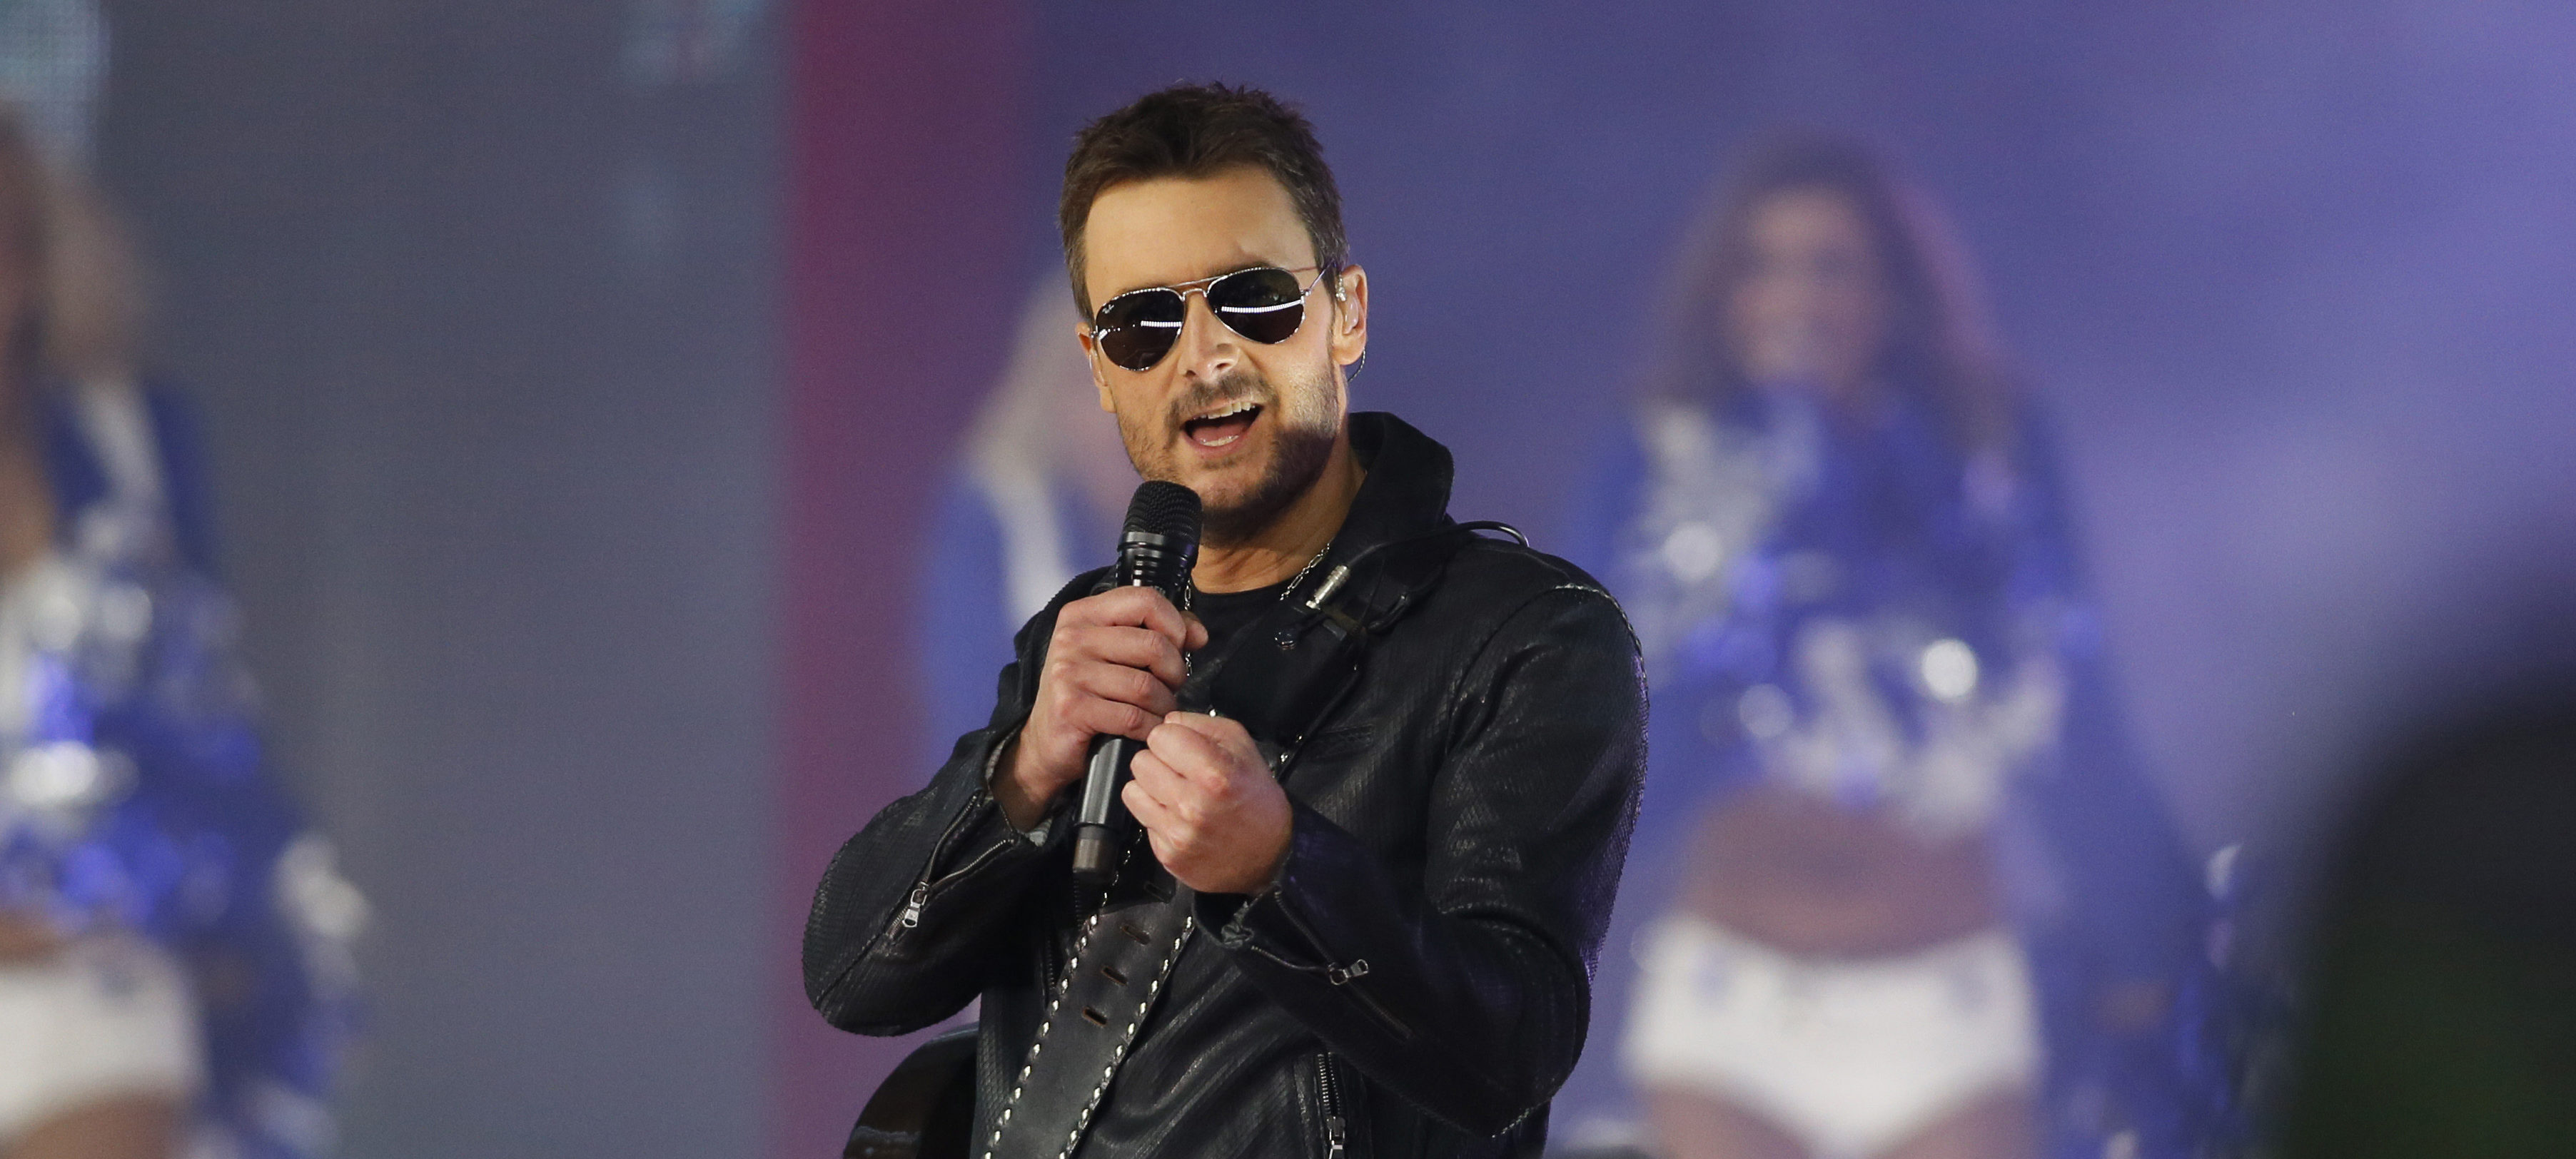 Nov 24, 2016; Arlington, TX, USA; Country music artist Eric Church performs during the halftime of the game between the Dallas Cowboys and the Washington Redskins at AT&T Stadium. Dallas won 31-26. Mandatory Credit: Tim Heitman